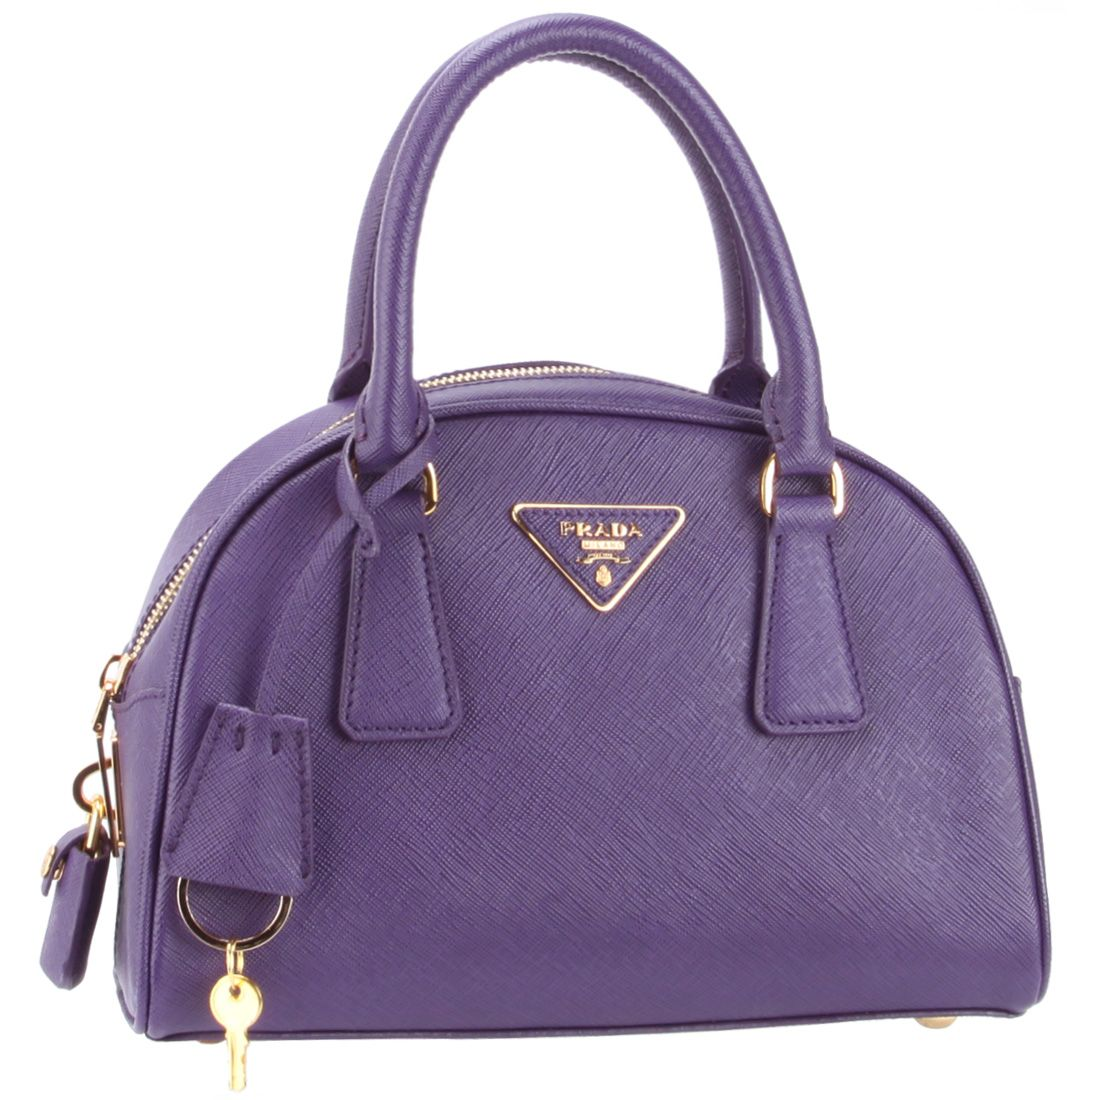 www.cheapdesignerhub com  2013 latest LV handbags online outlet, cheap designer handbags online outlet, free shipping cheap LOUIS VUITTON handbags